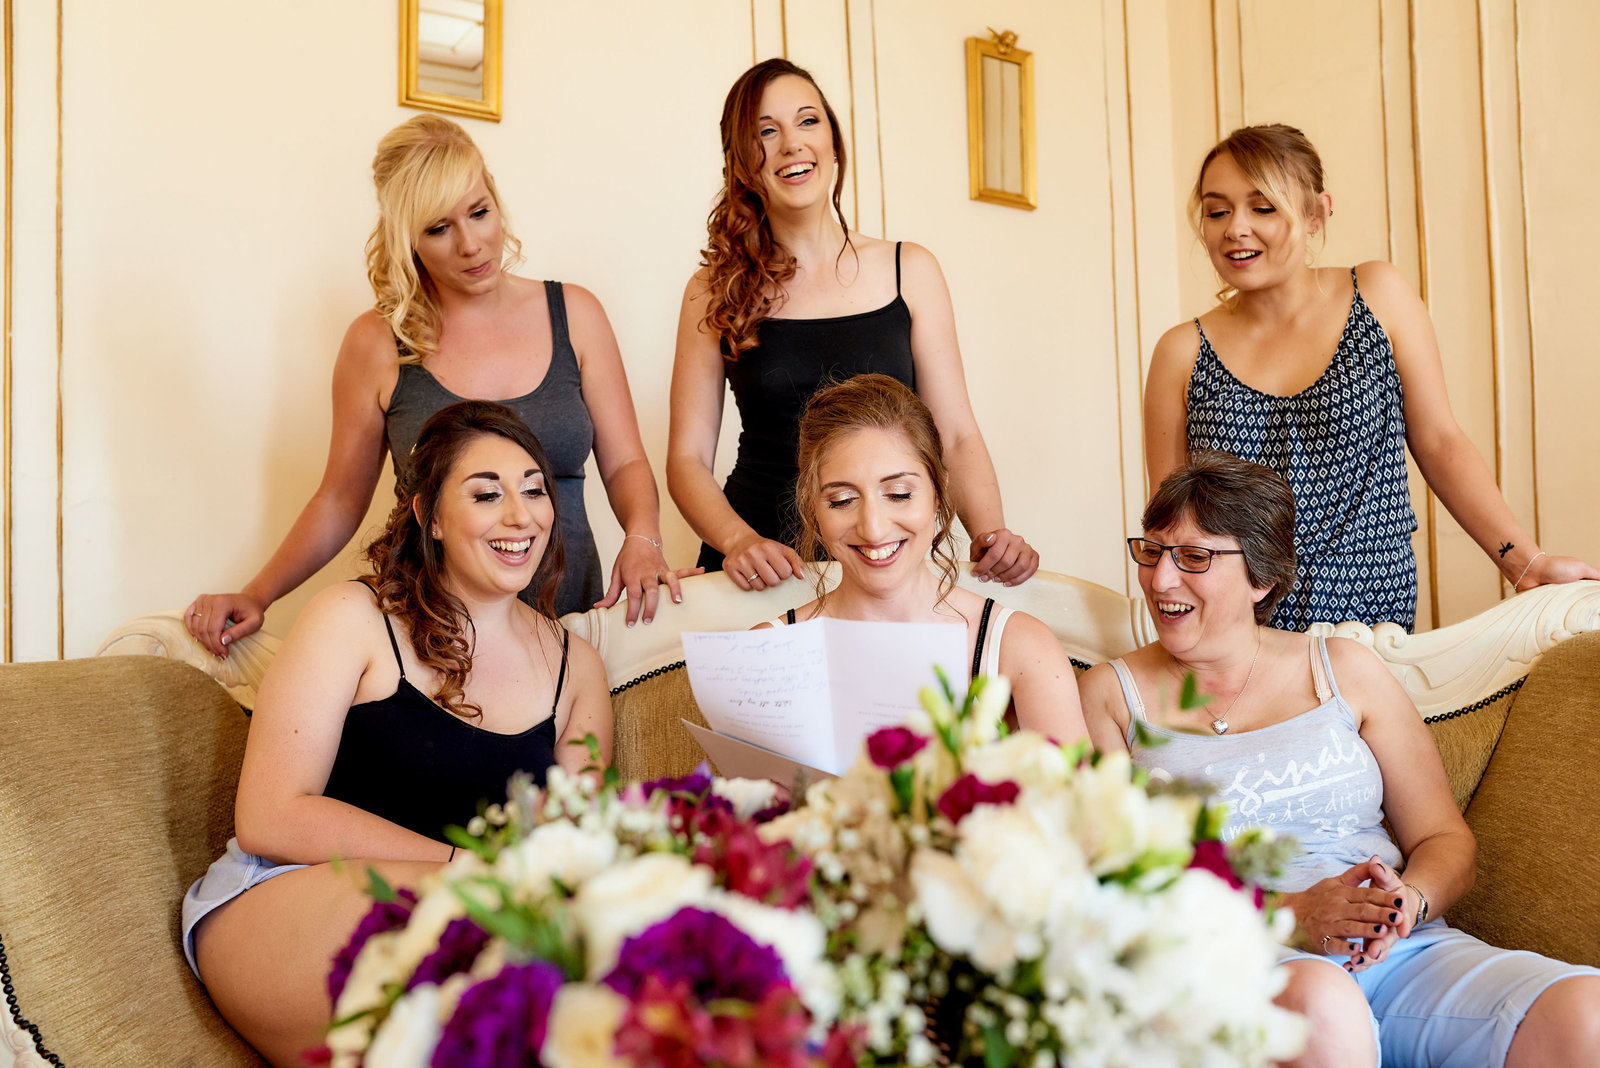 Bride and her bridesmaids at gosfield hall wedding venue in essex